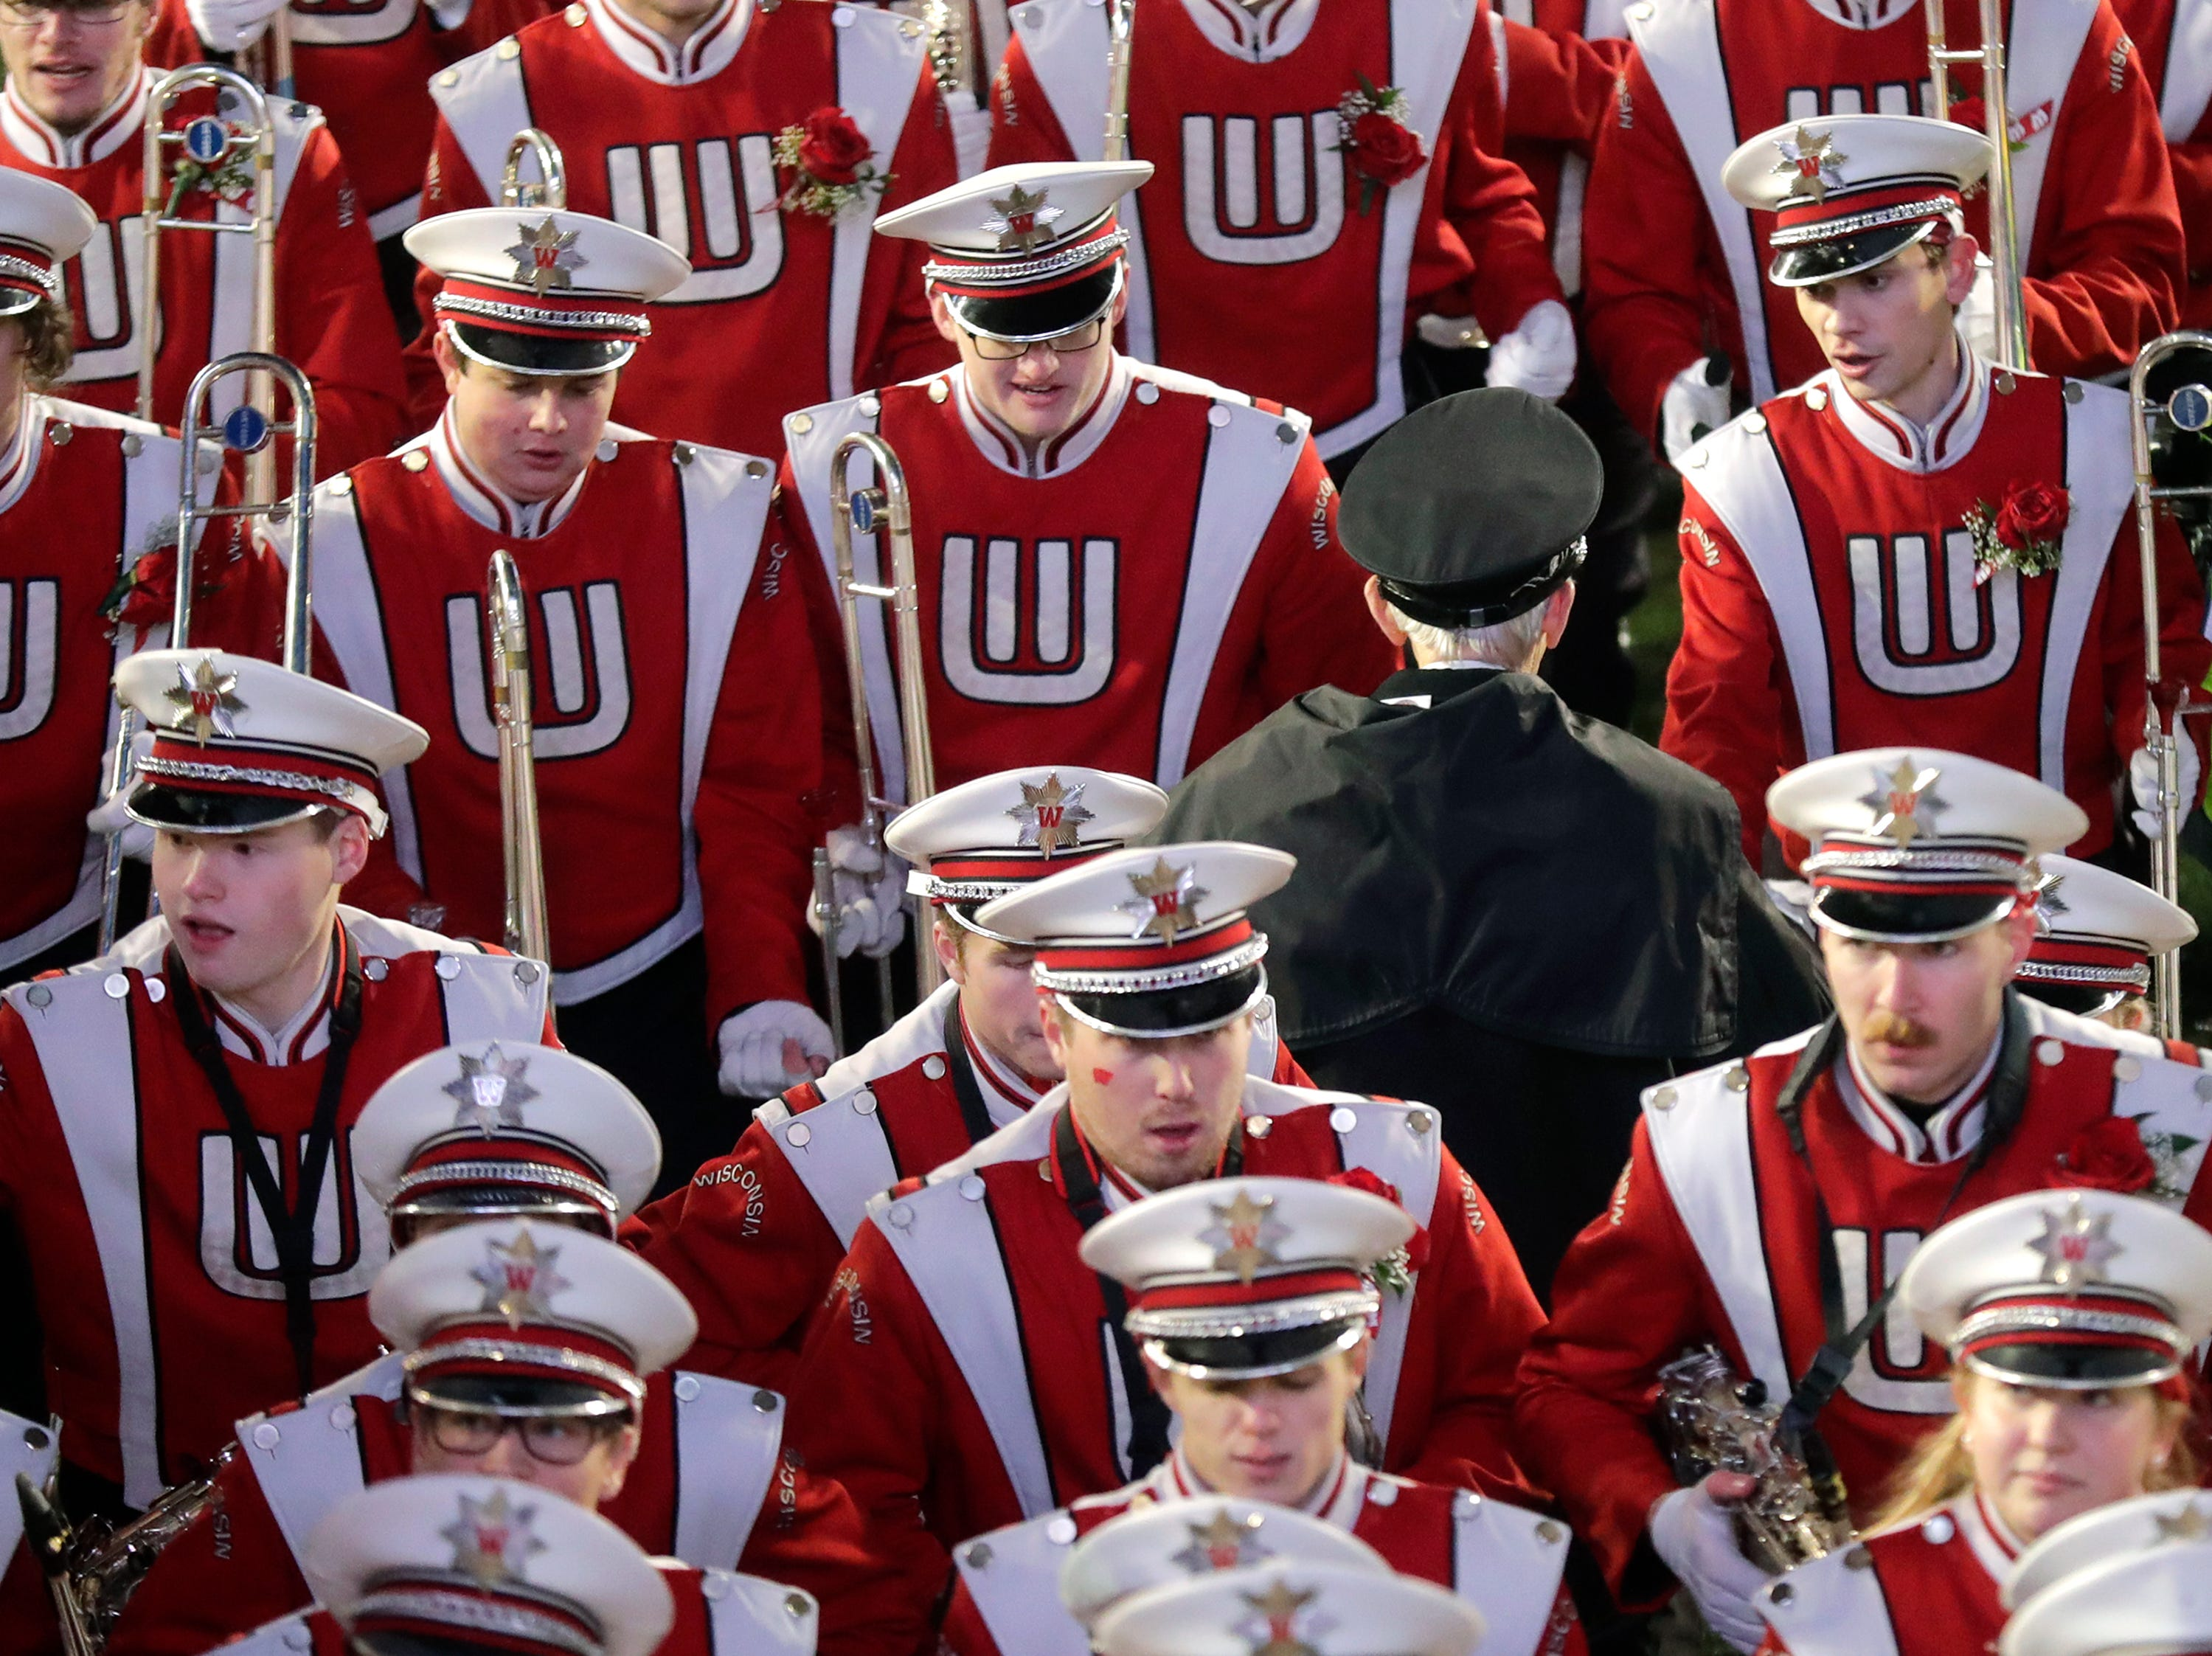 The University of Wisconsin Marching Band Director Michael Leckrone leaves the field following the Wisconsin Badgers loss to the Minnesota Gophers on Saturday, November 24, 2018, at Camp Randall in Madison, Wis. Leckrone is retiring after fifty years as leader of the band.